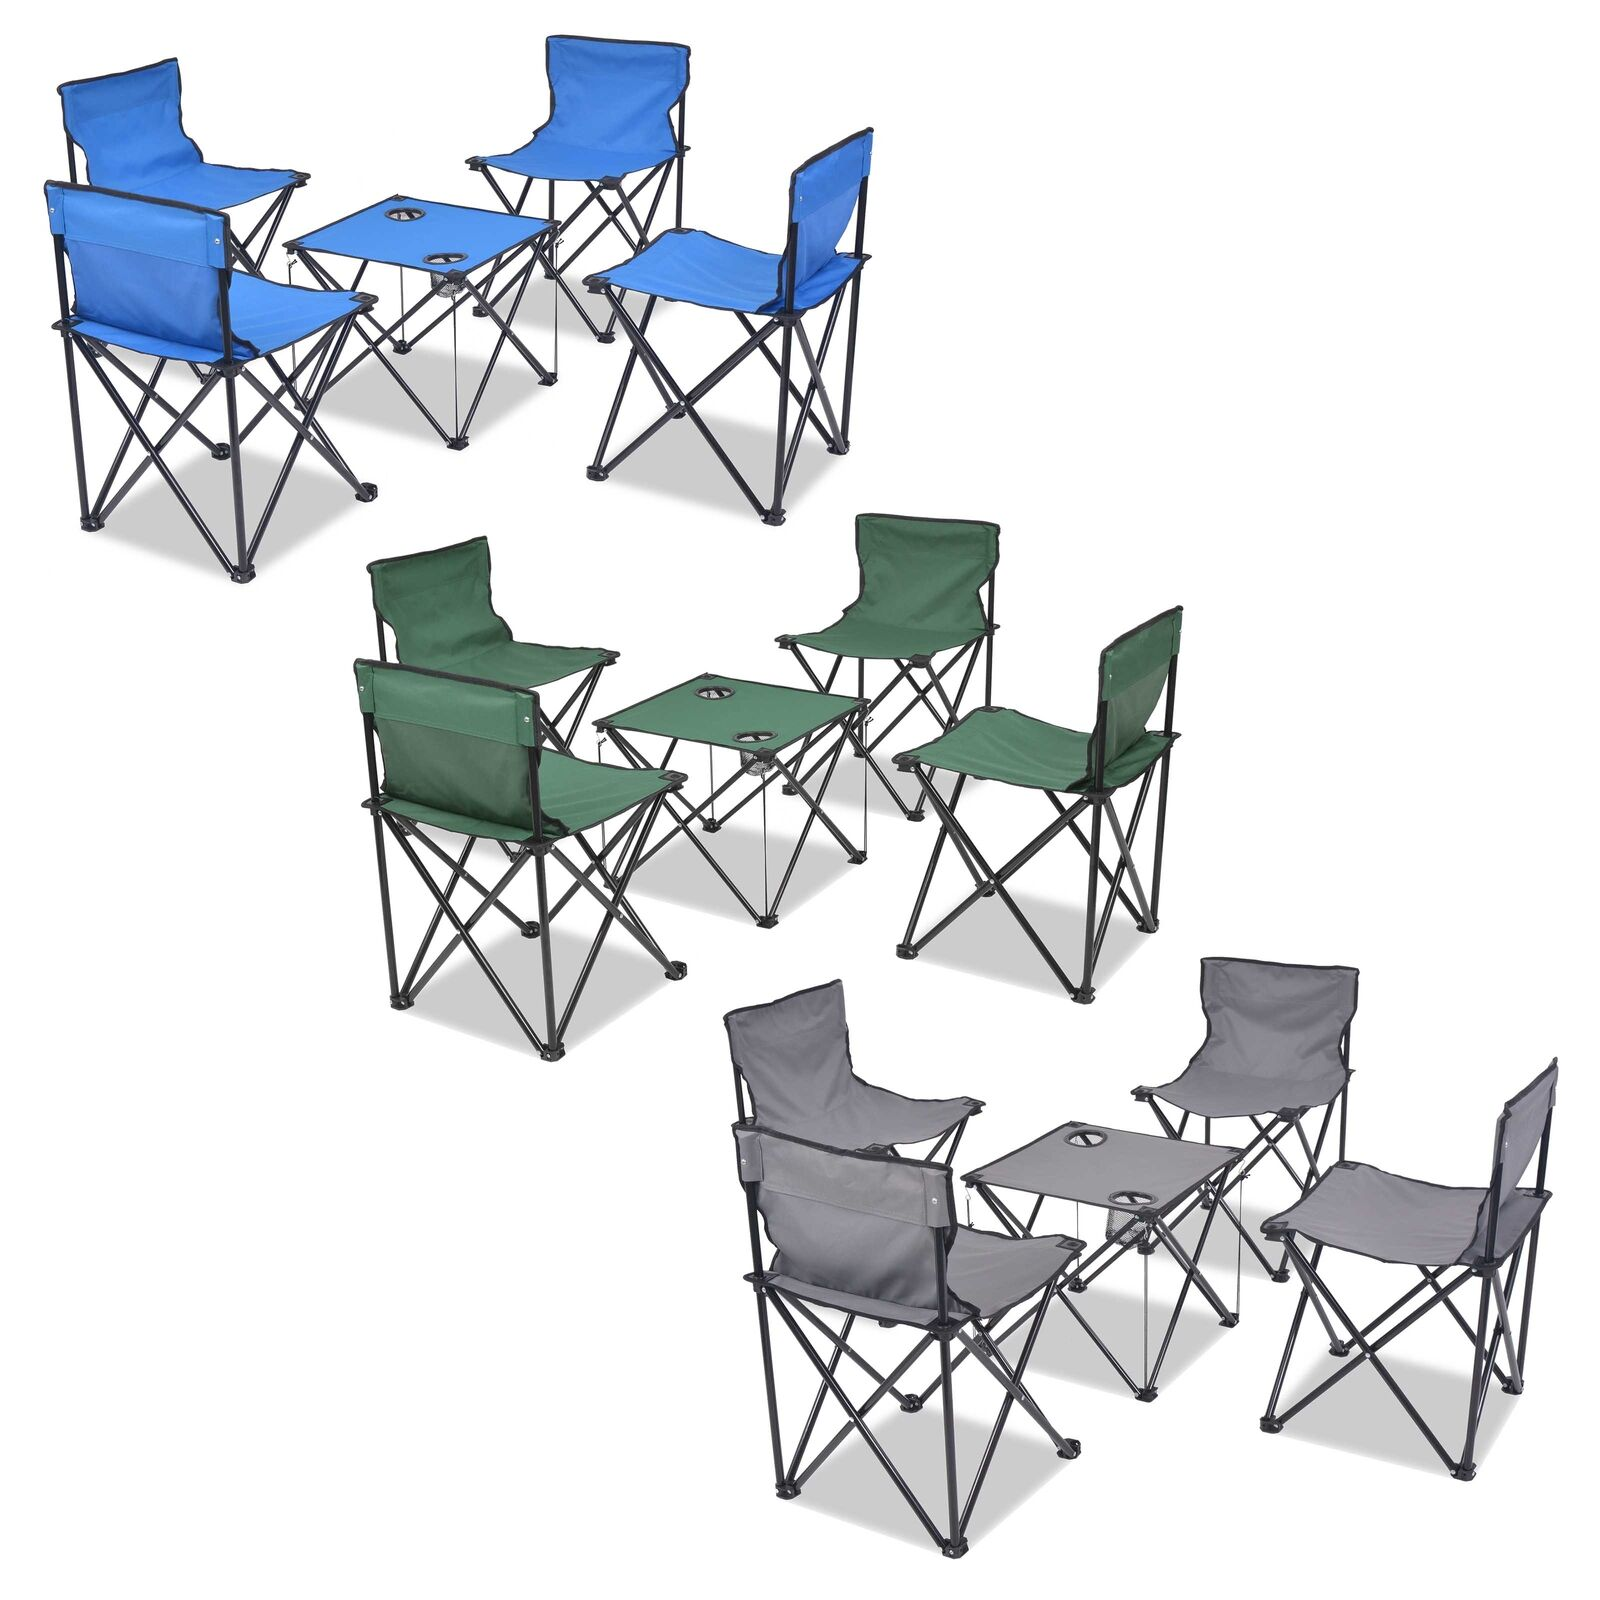 VidaXL Folding Camping Furniture Set 5 Piece 45x45x70cm Picnic Multi Colours